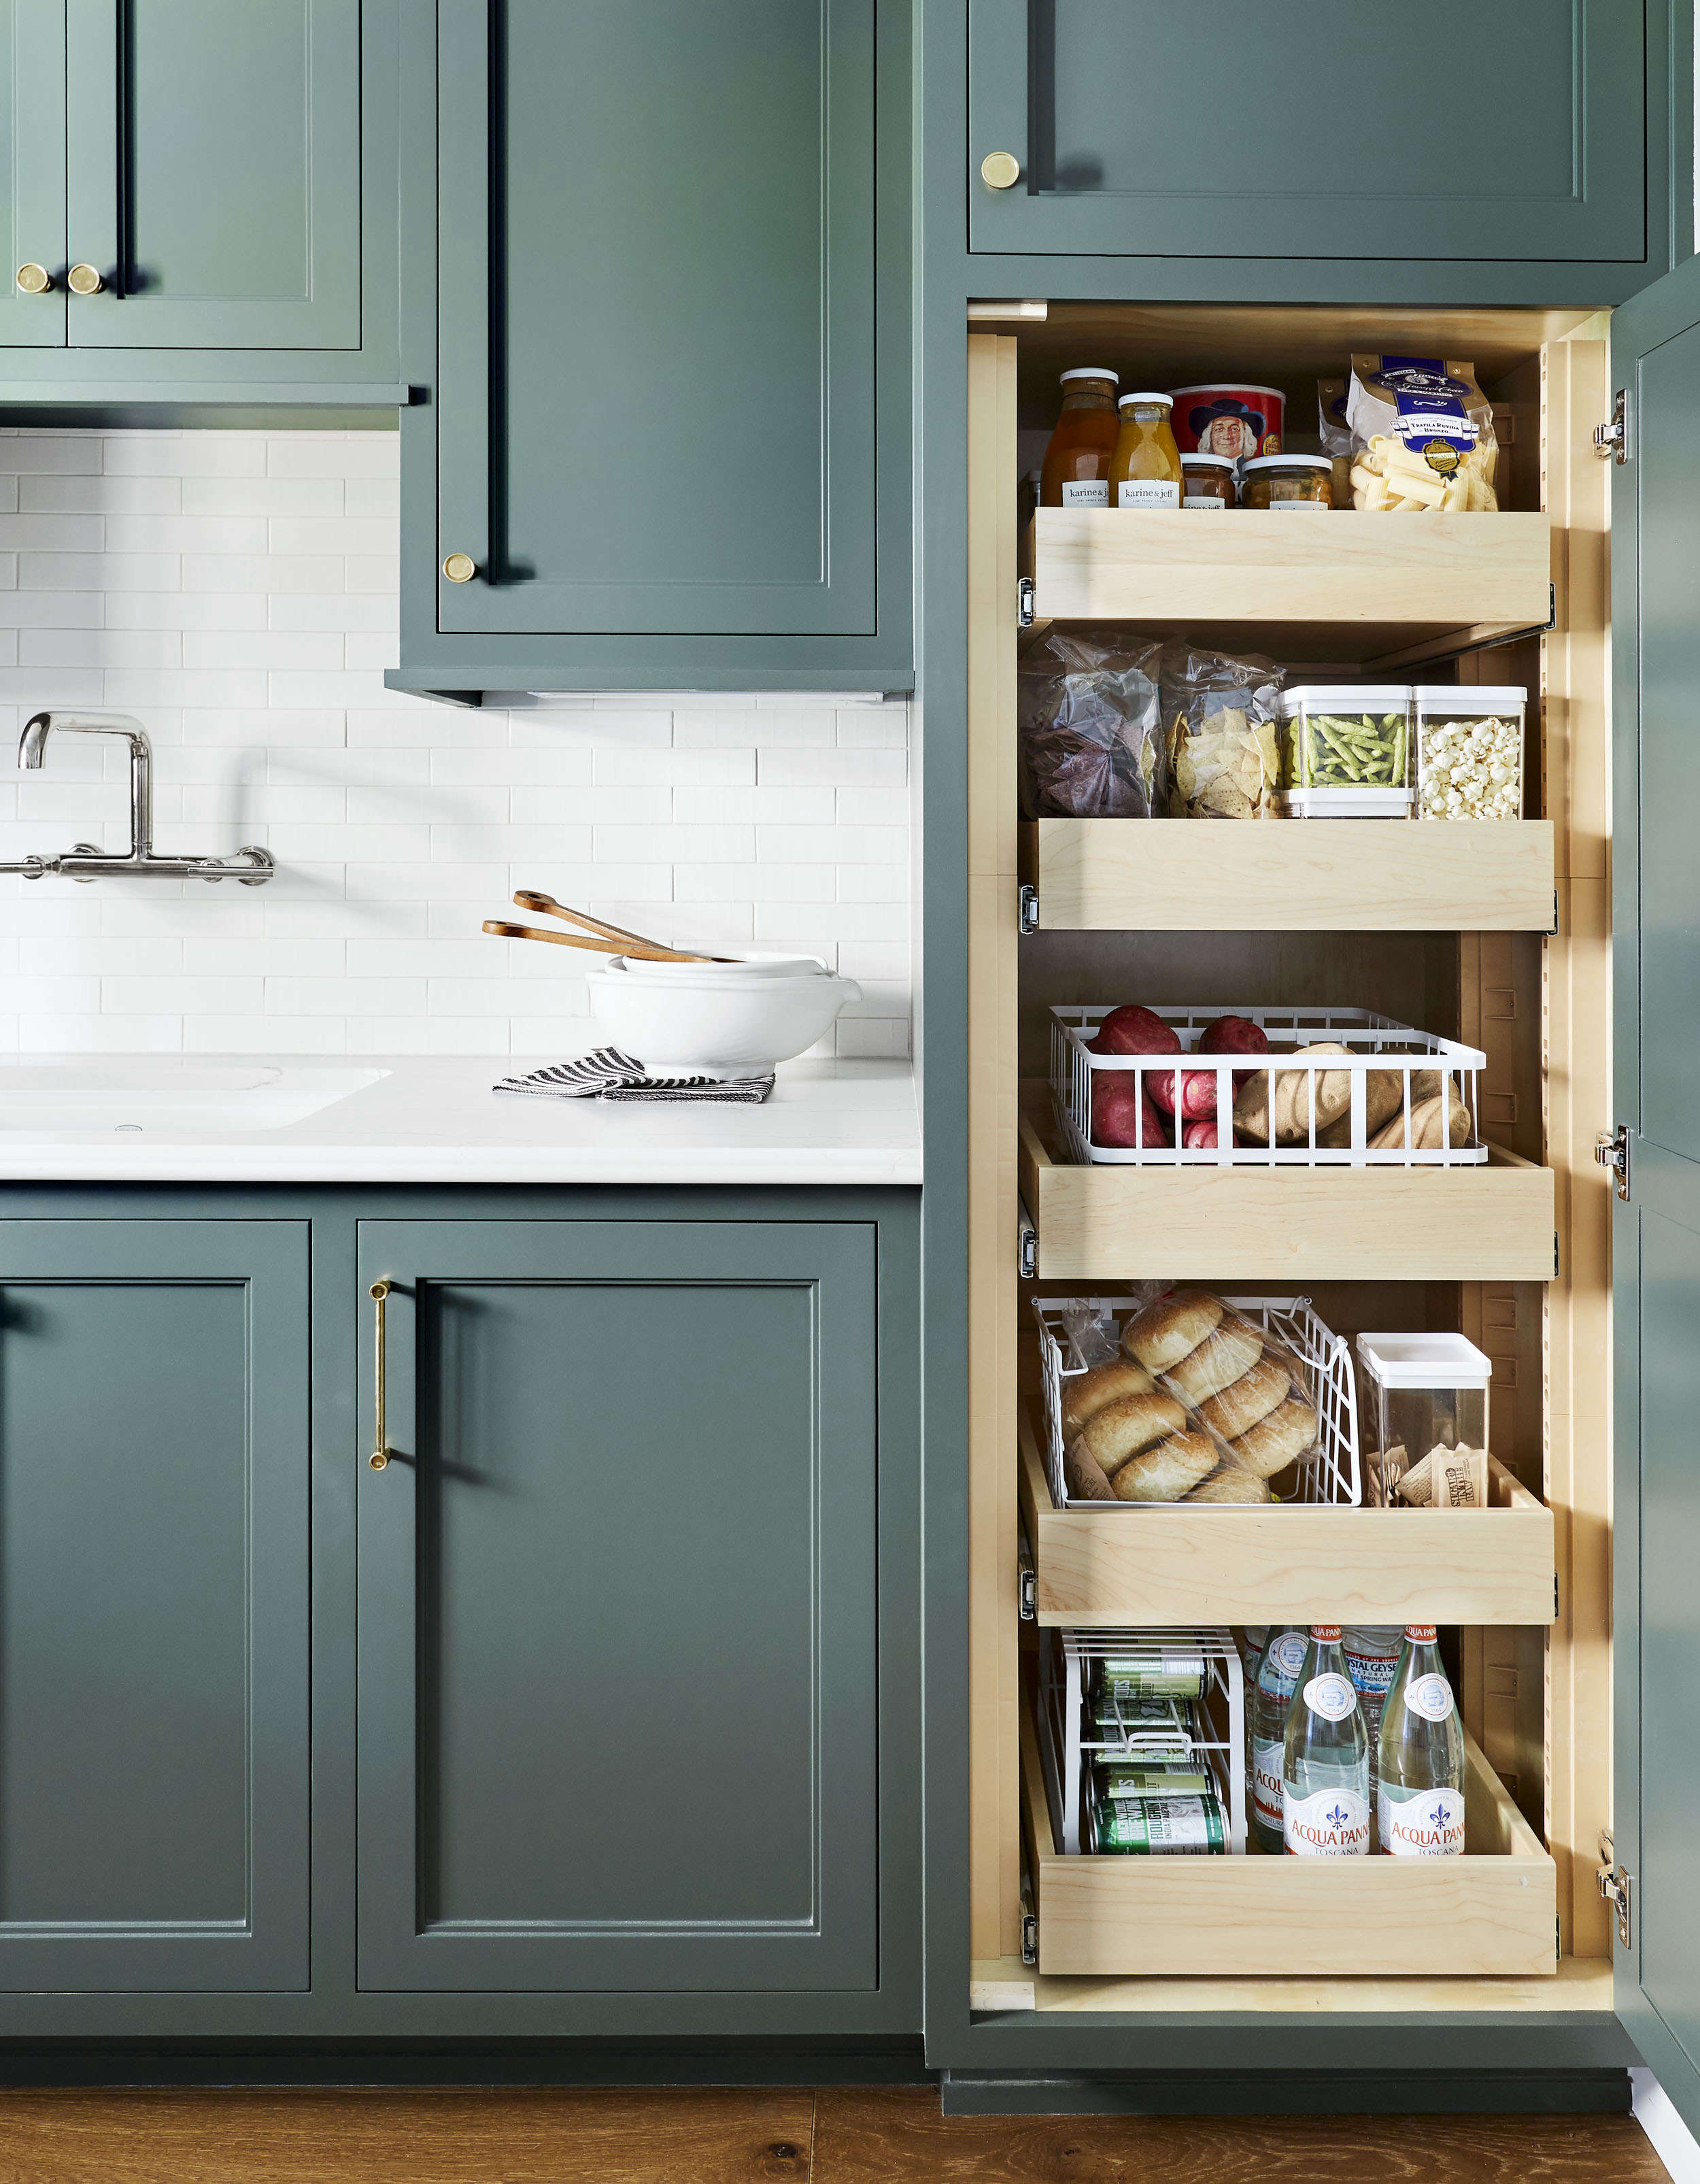 10 Things Nobody Tells You About Organizing Your Pantry